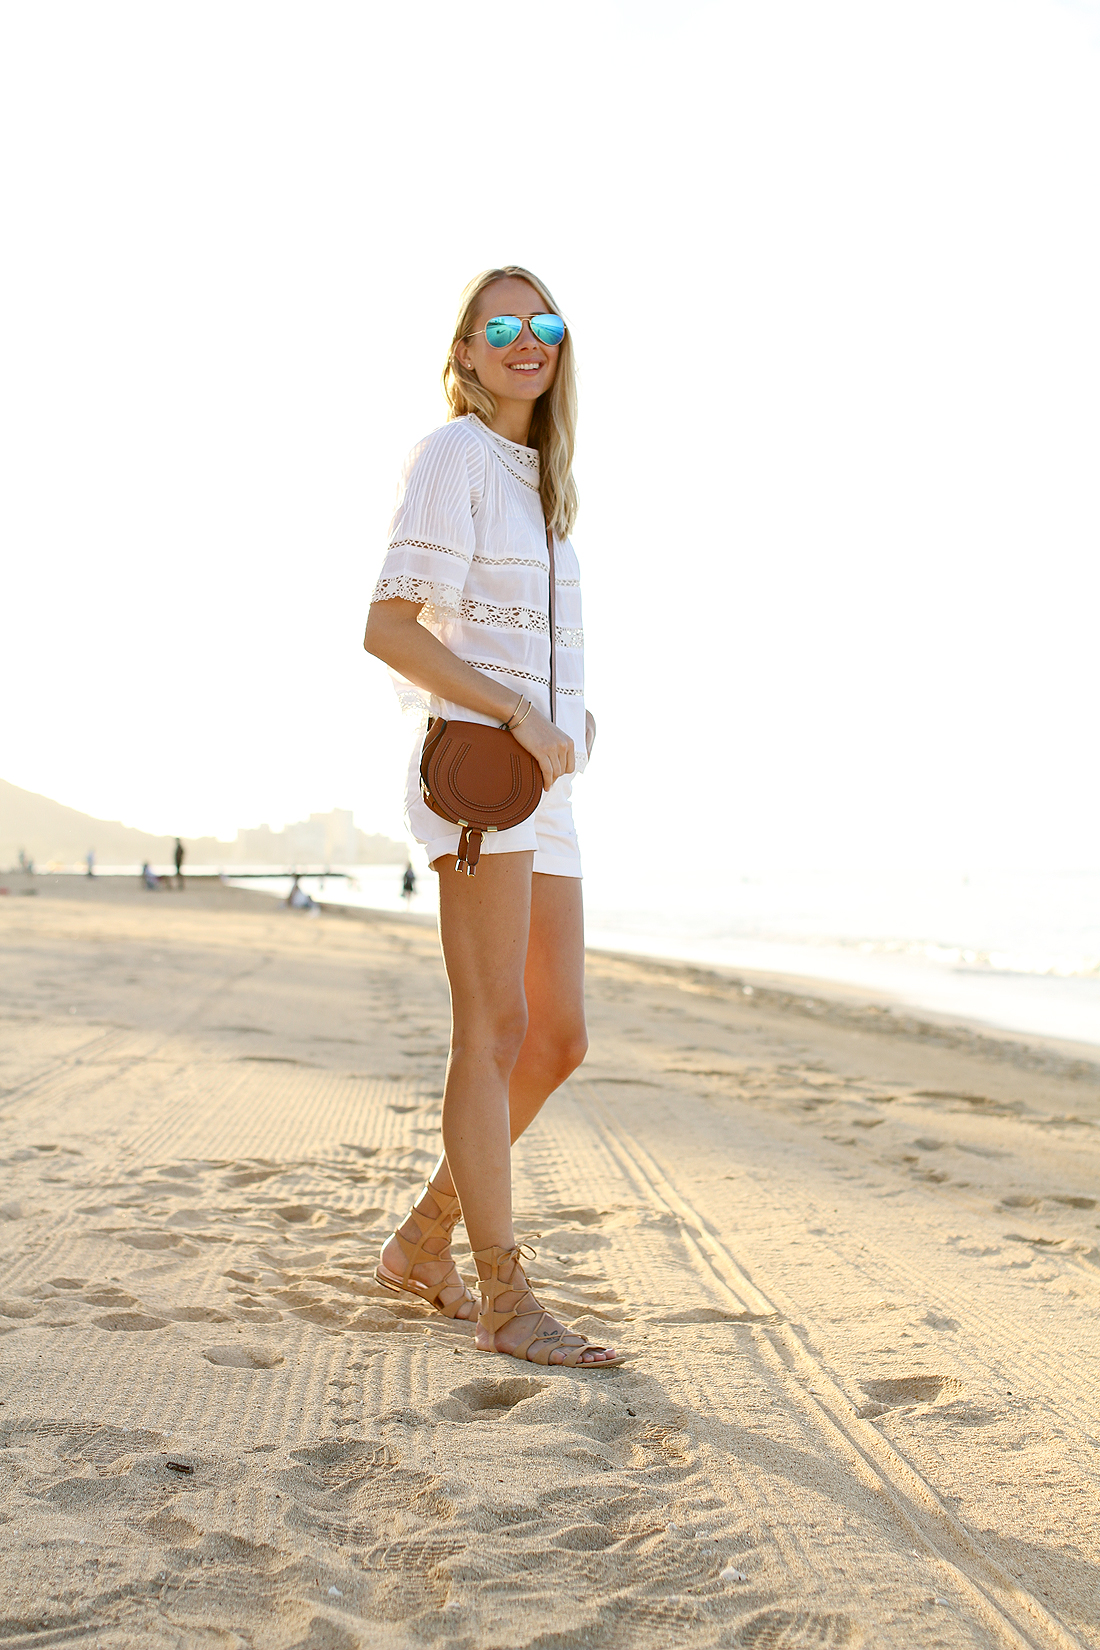 fashion-jackson-blue-ray-ban-sunglasses-white-lace-top-chloe-marcie-crossbody